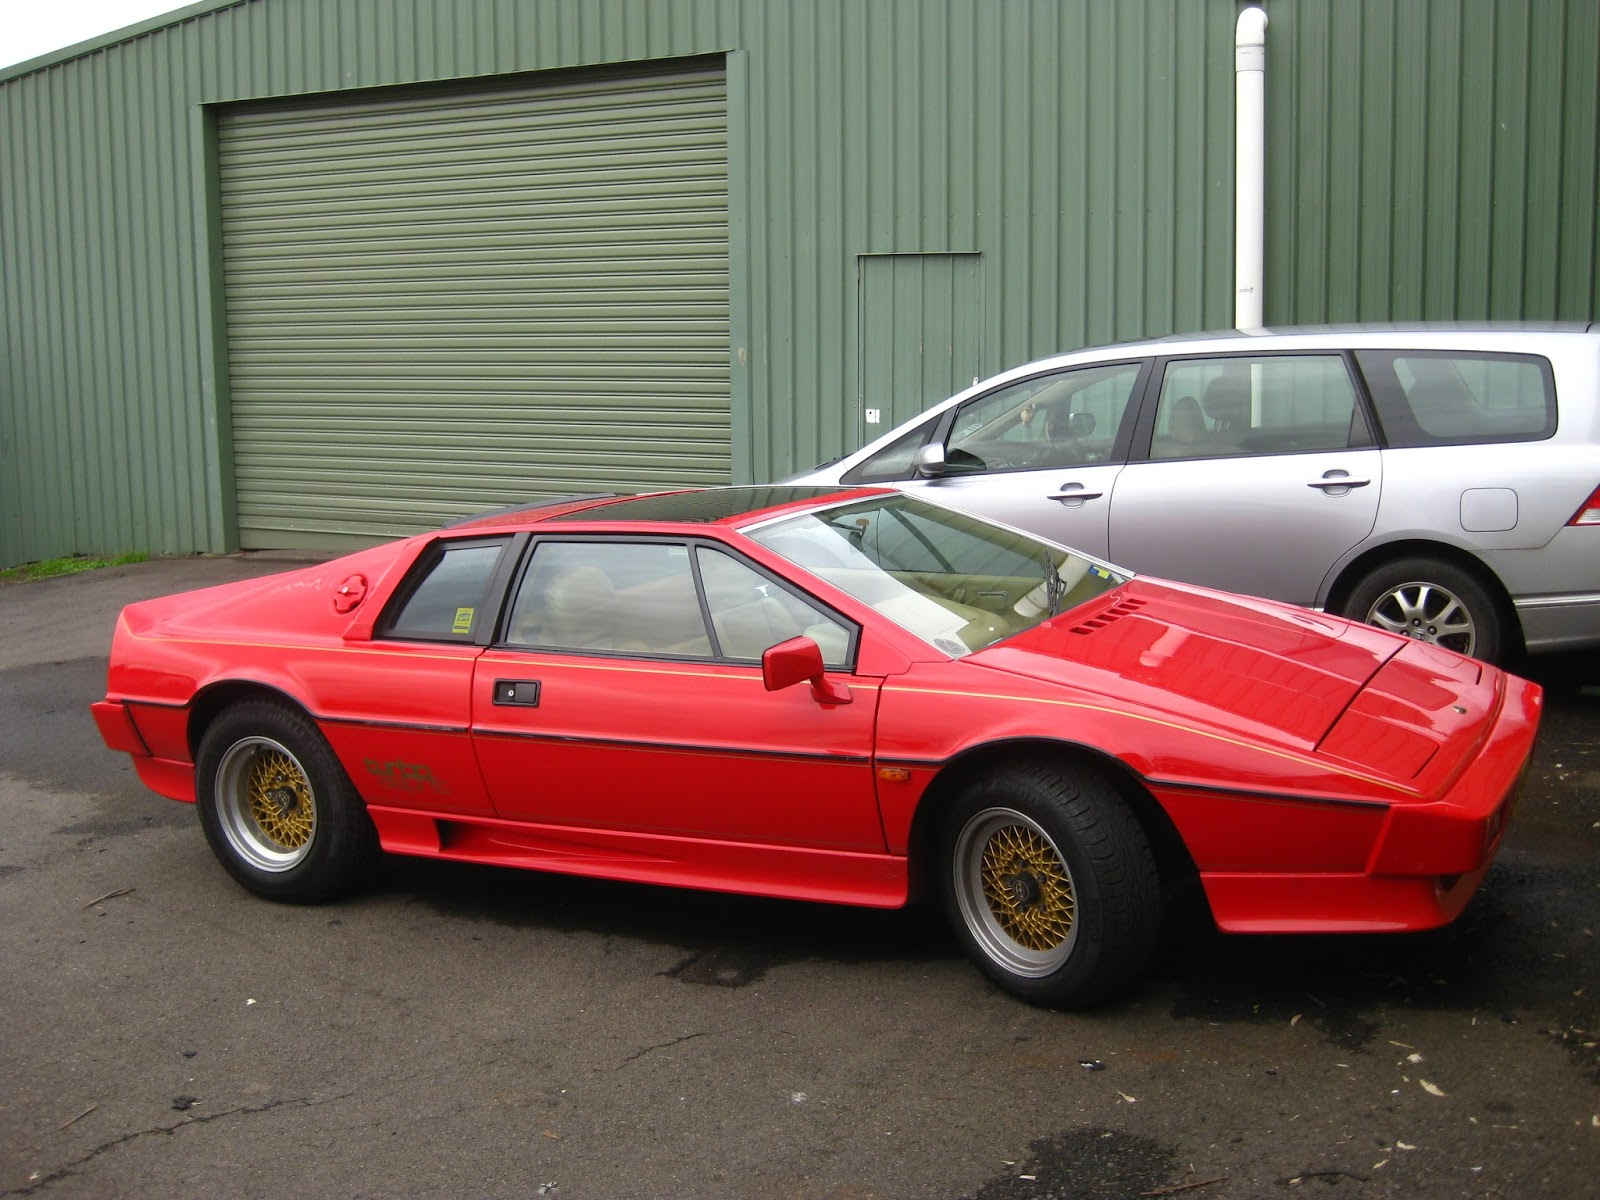 Aussie Old Parked Cars: 1985 Lotus Esprit Turbo